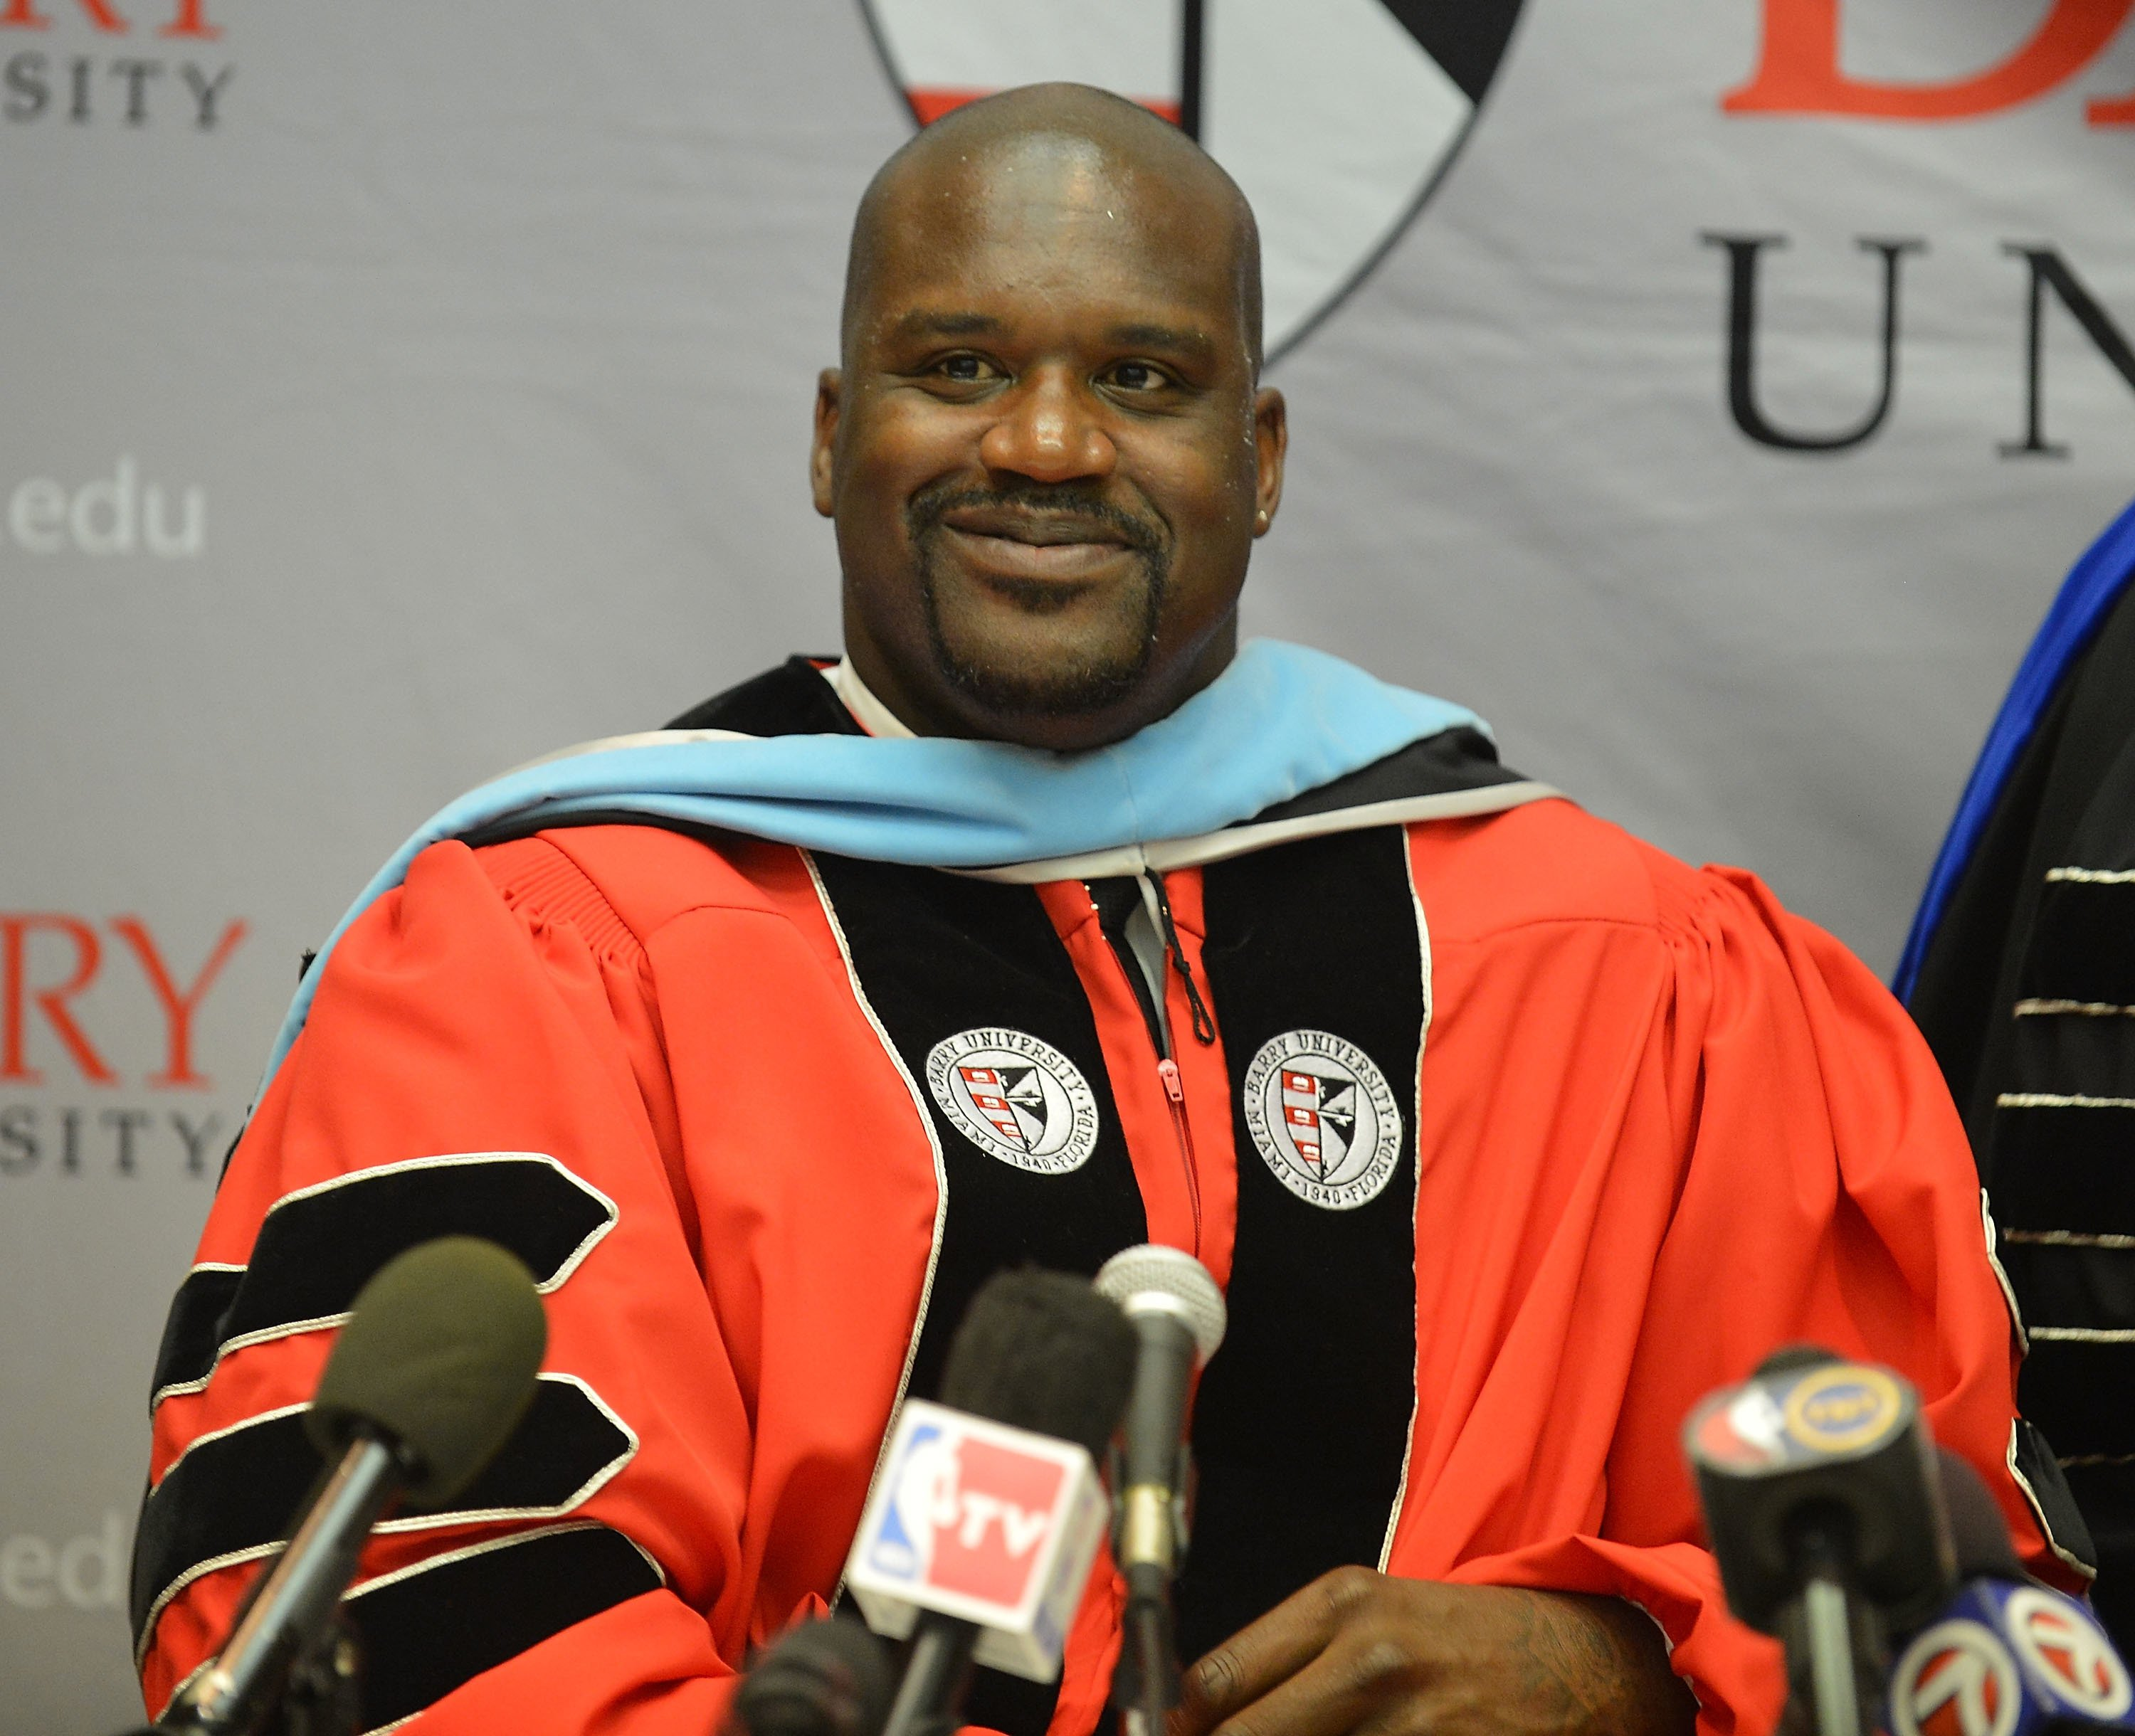 Shaq O'Neal receiving his doctorate in education from Barry University in Miami in 2012 | Source: Getty Images